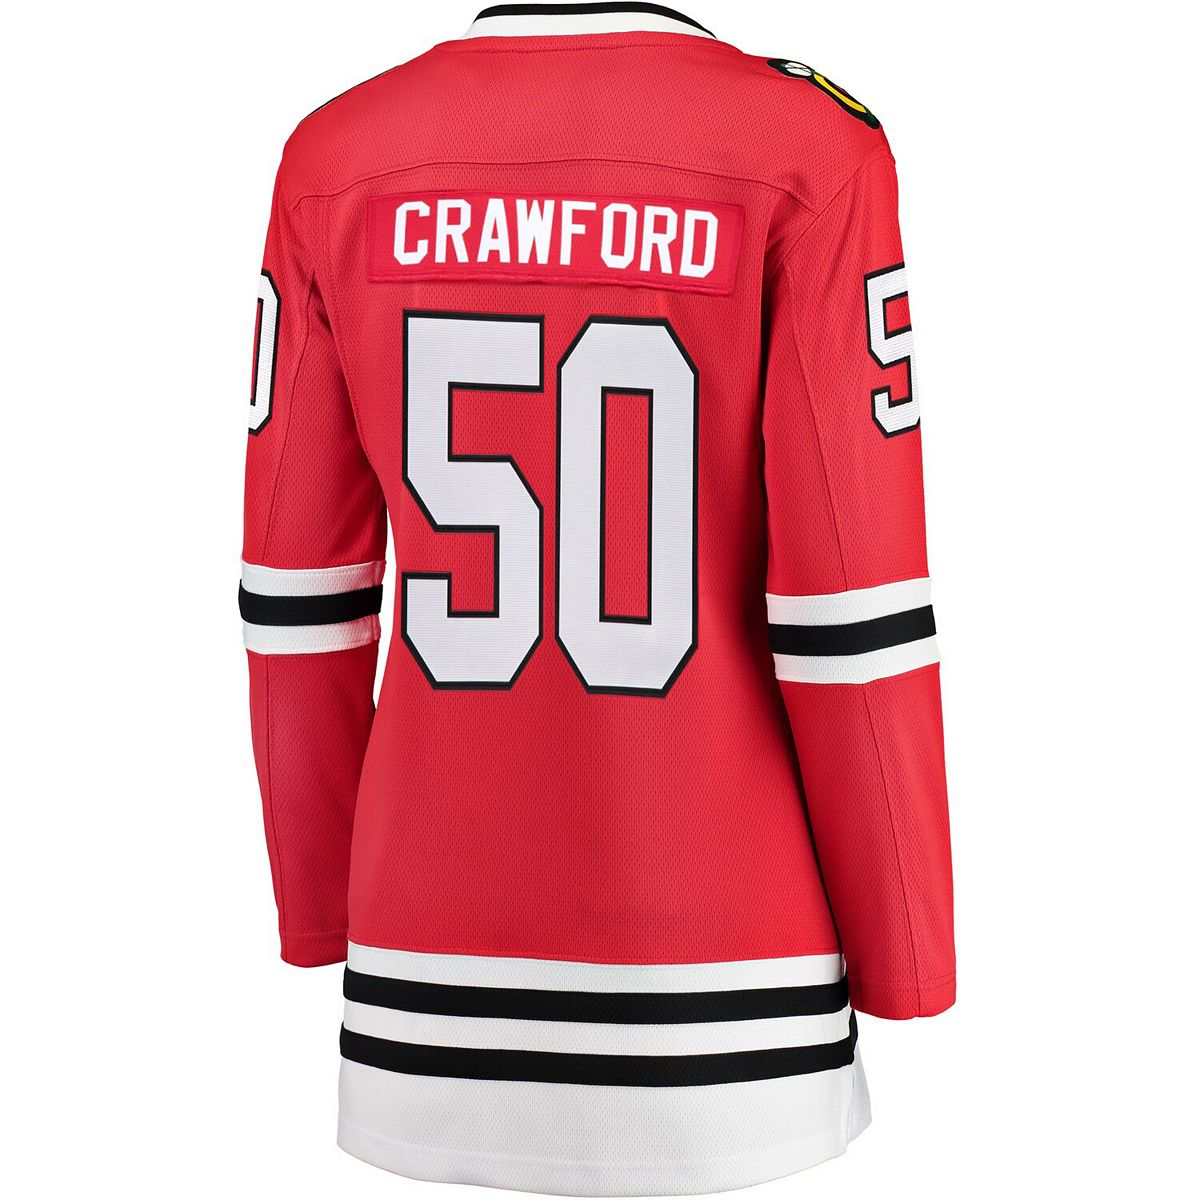 Women's Fanatics Branded Corey Crawford Red Chicago Blackhawks Breakaway Player Jersey lY68I